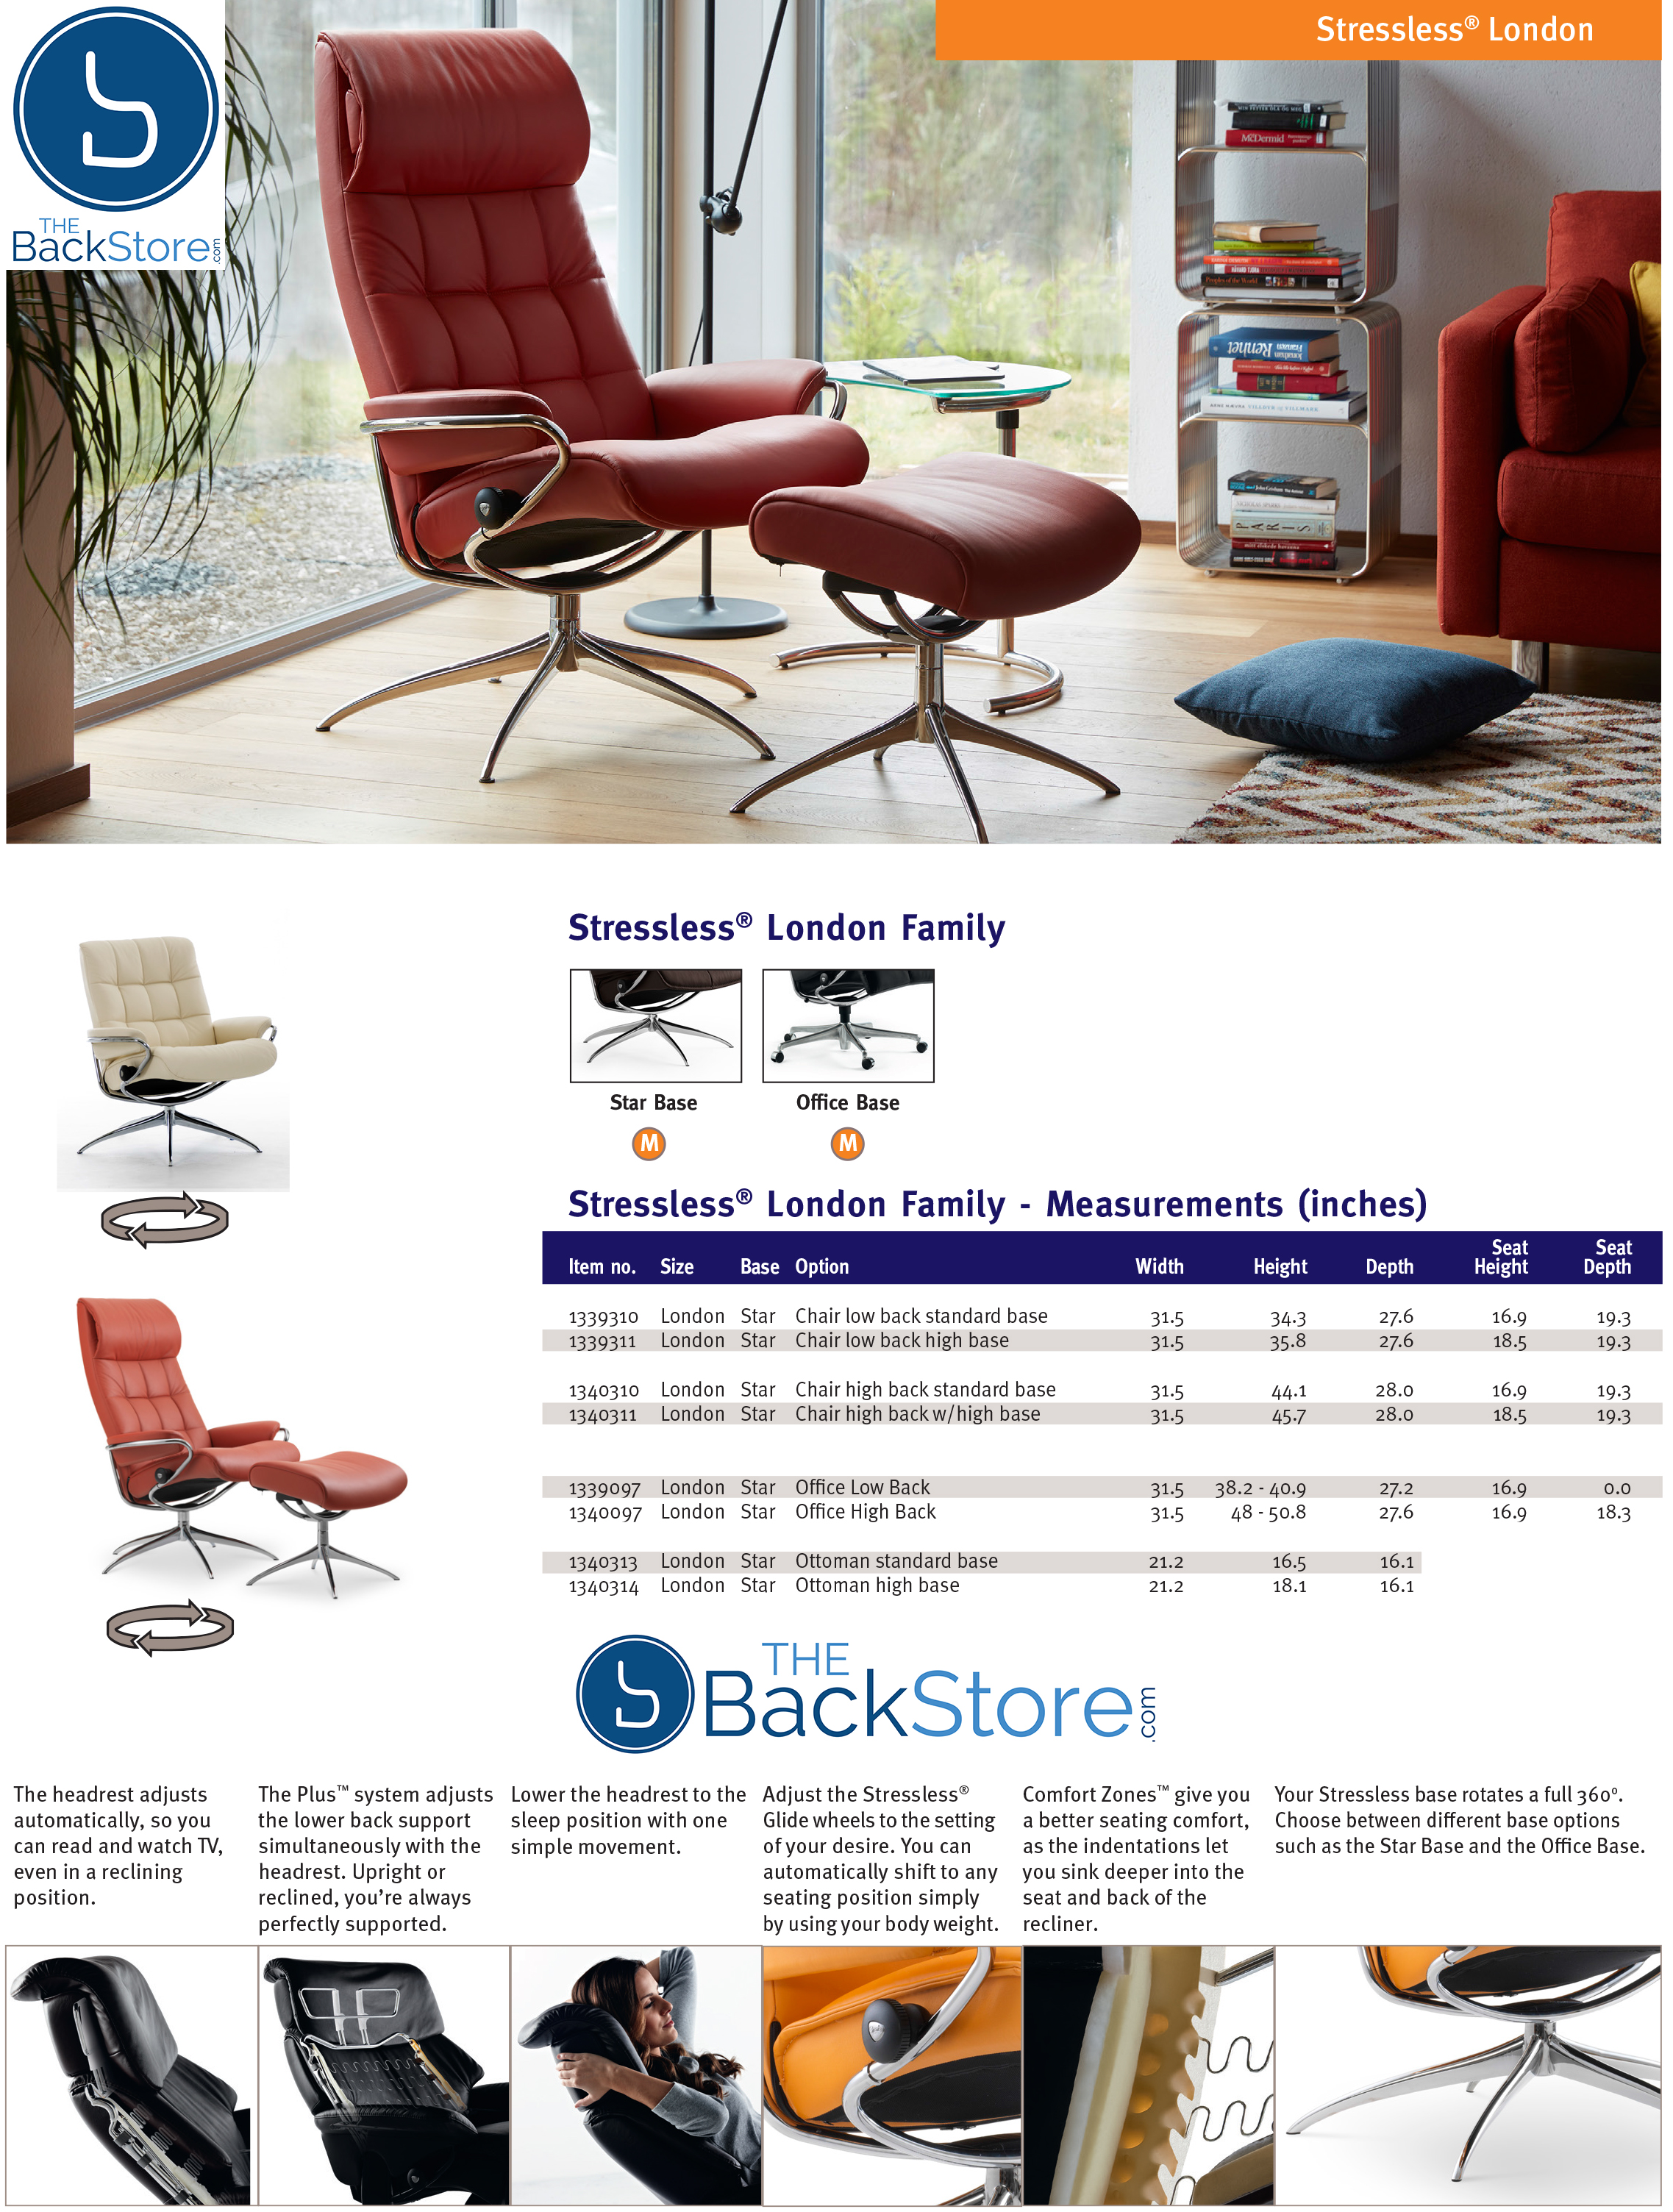 Wondrous Stressless London High Back Recliner Chair And Ottoman In Paloma Vanilla White Leather By Ekornes Machost Co Dining Chair Design Ideas Machostcouk